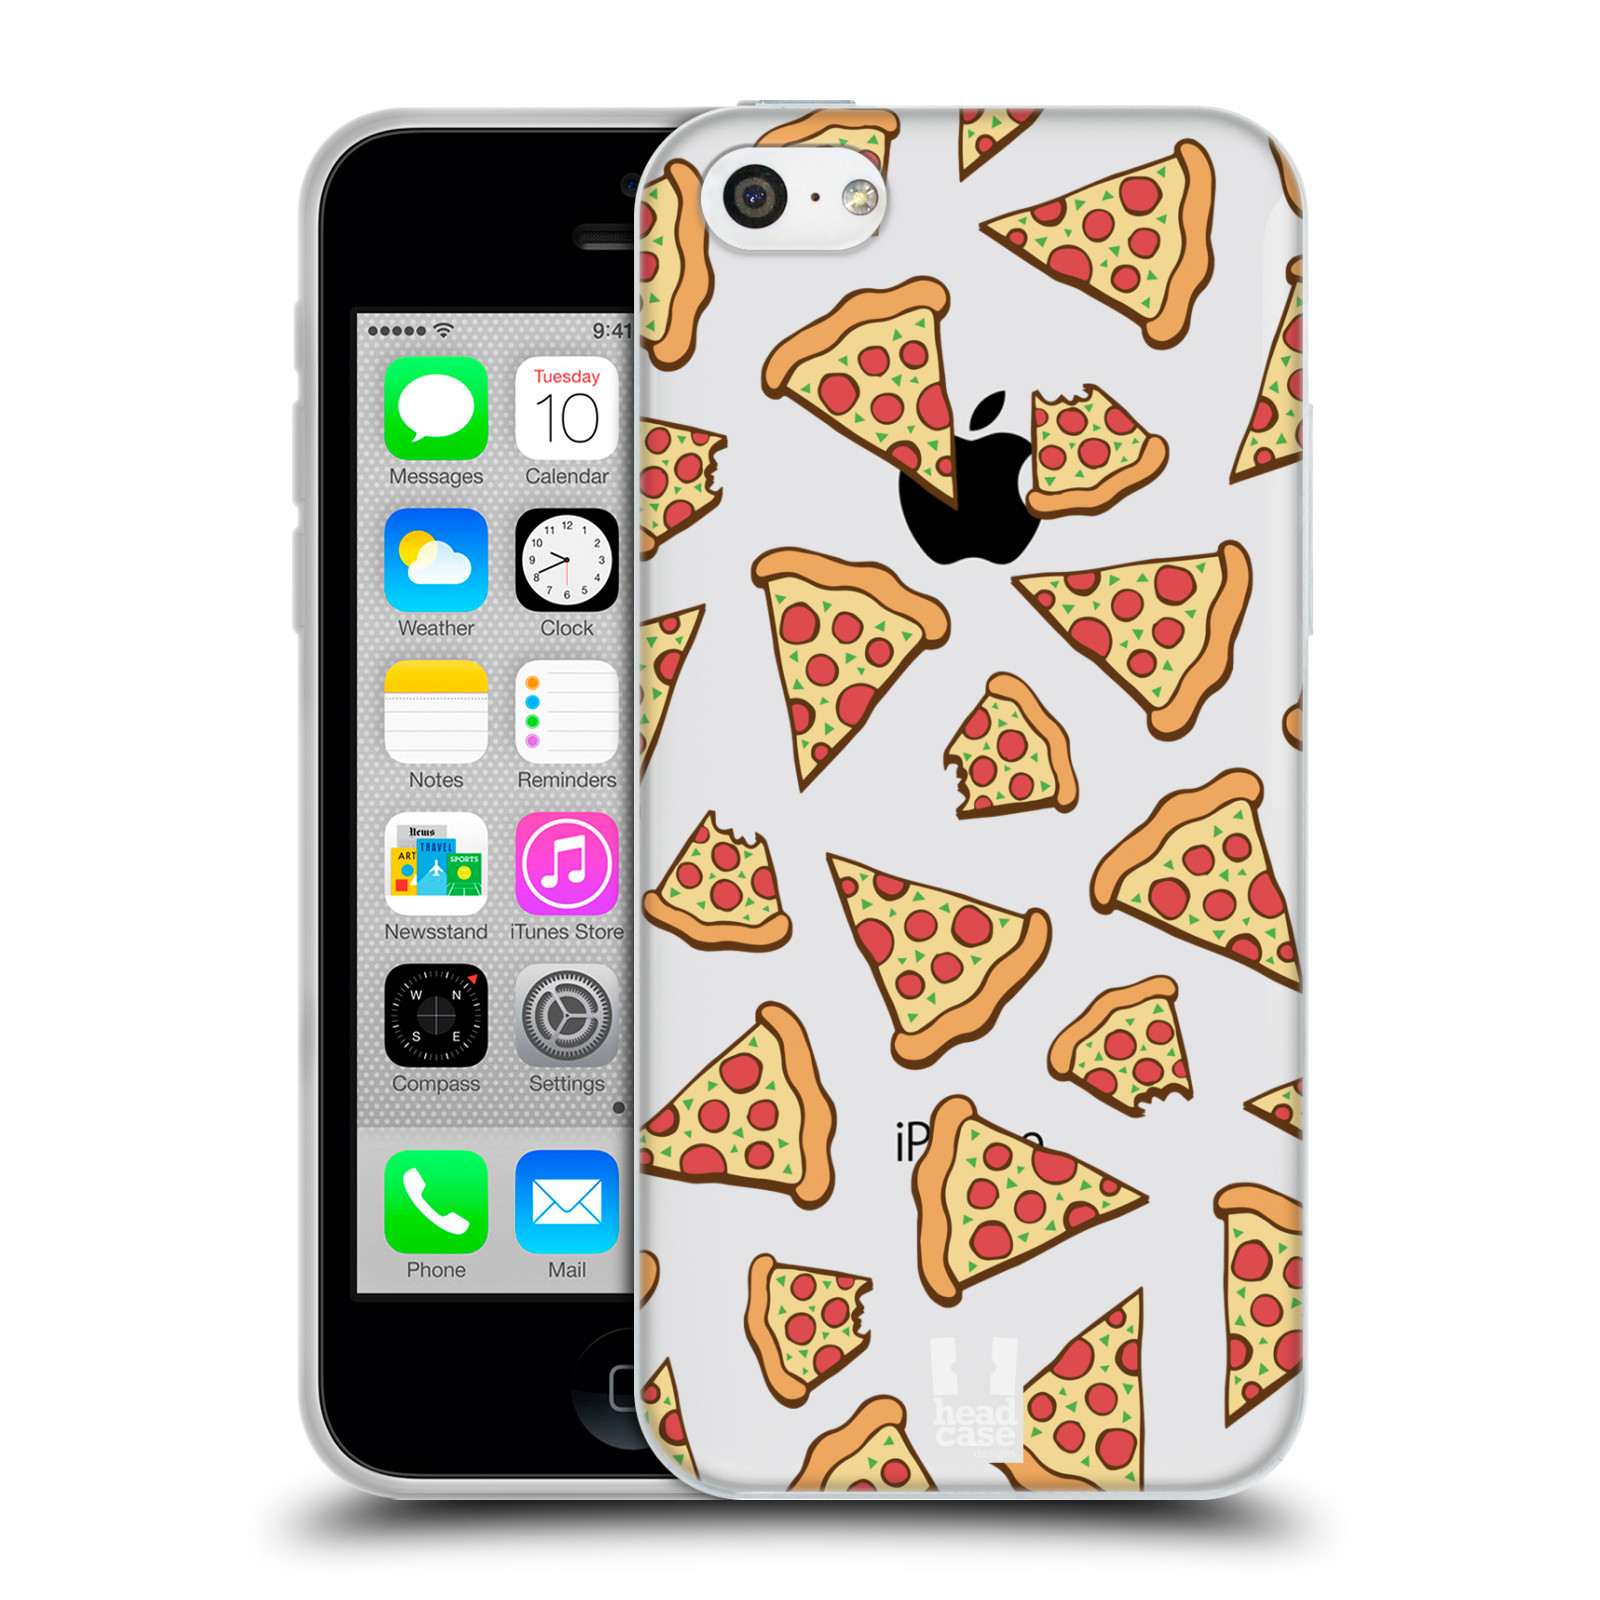 Silikonové pouzdro na mobil Apple iPhone 5C - Head Case - Pizza